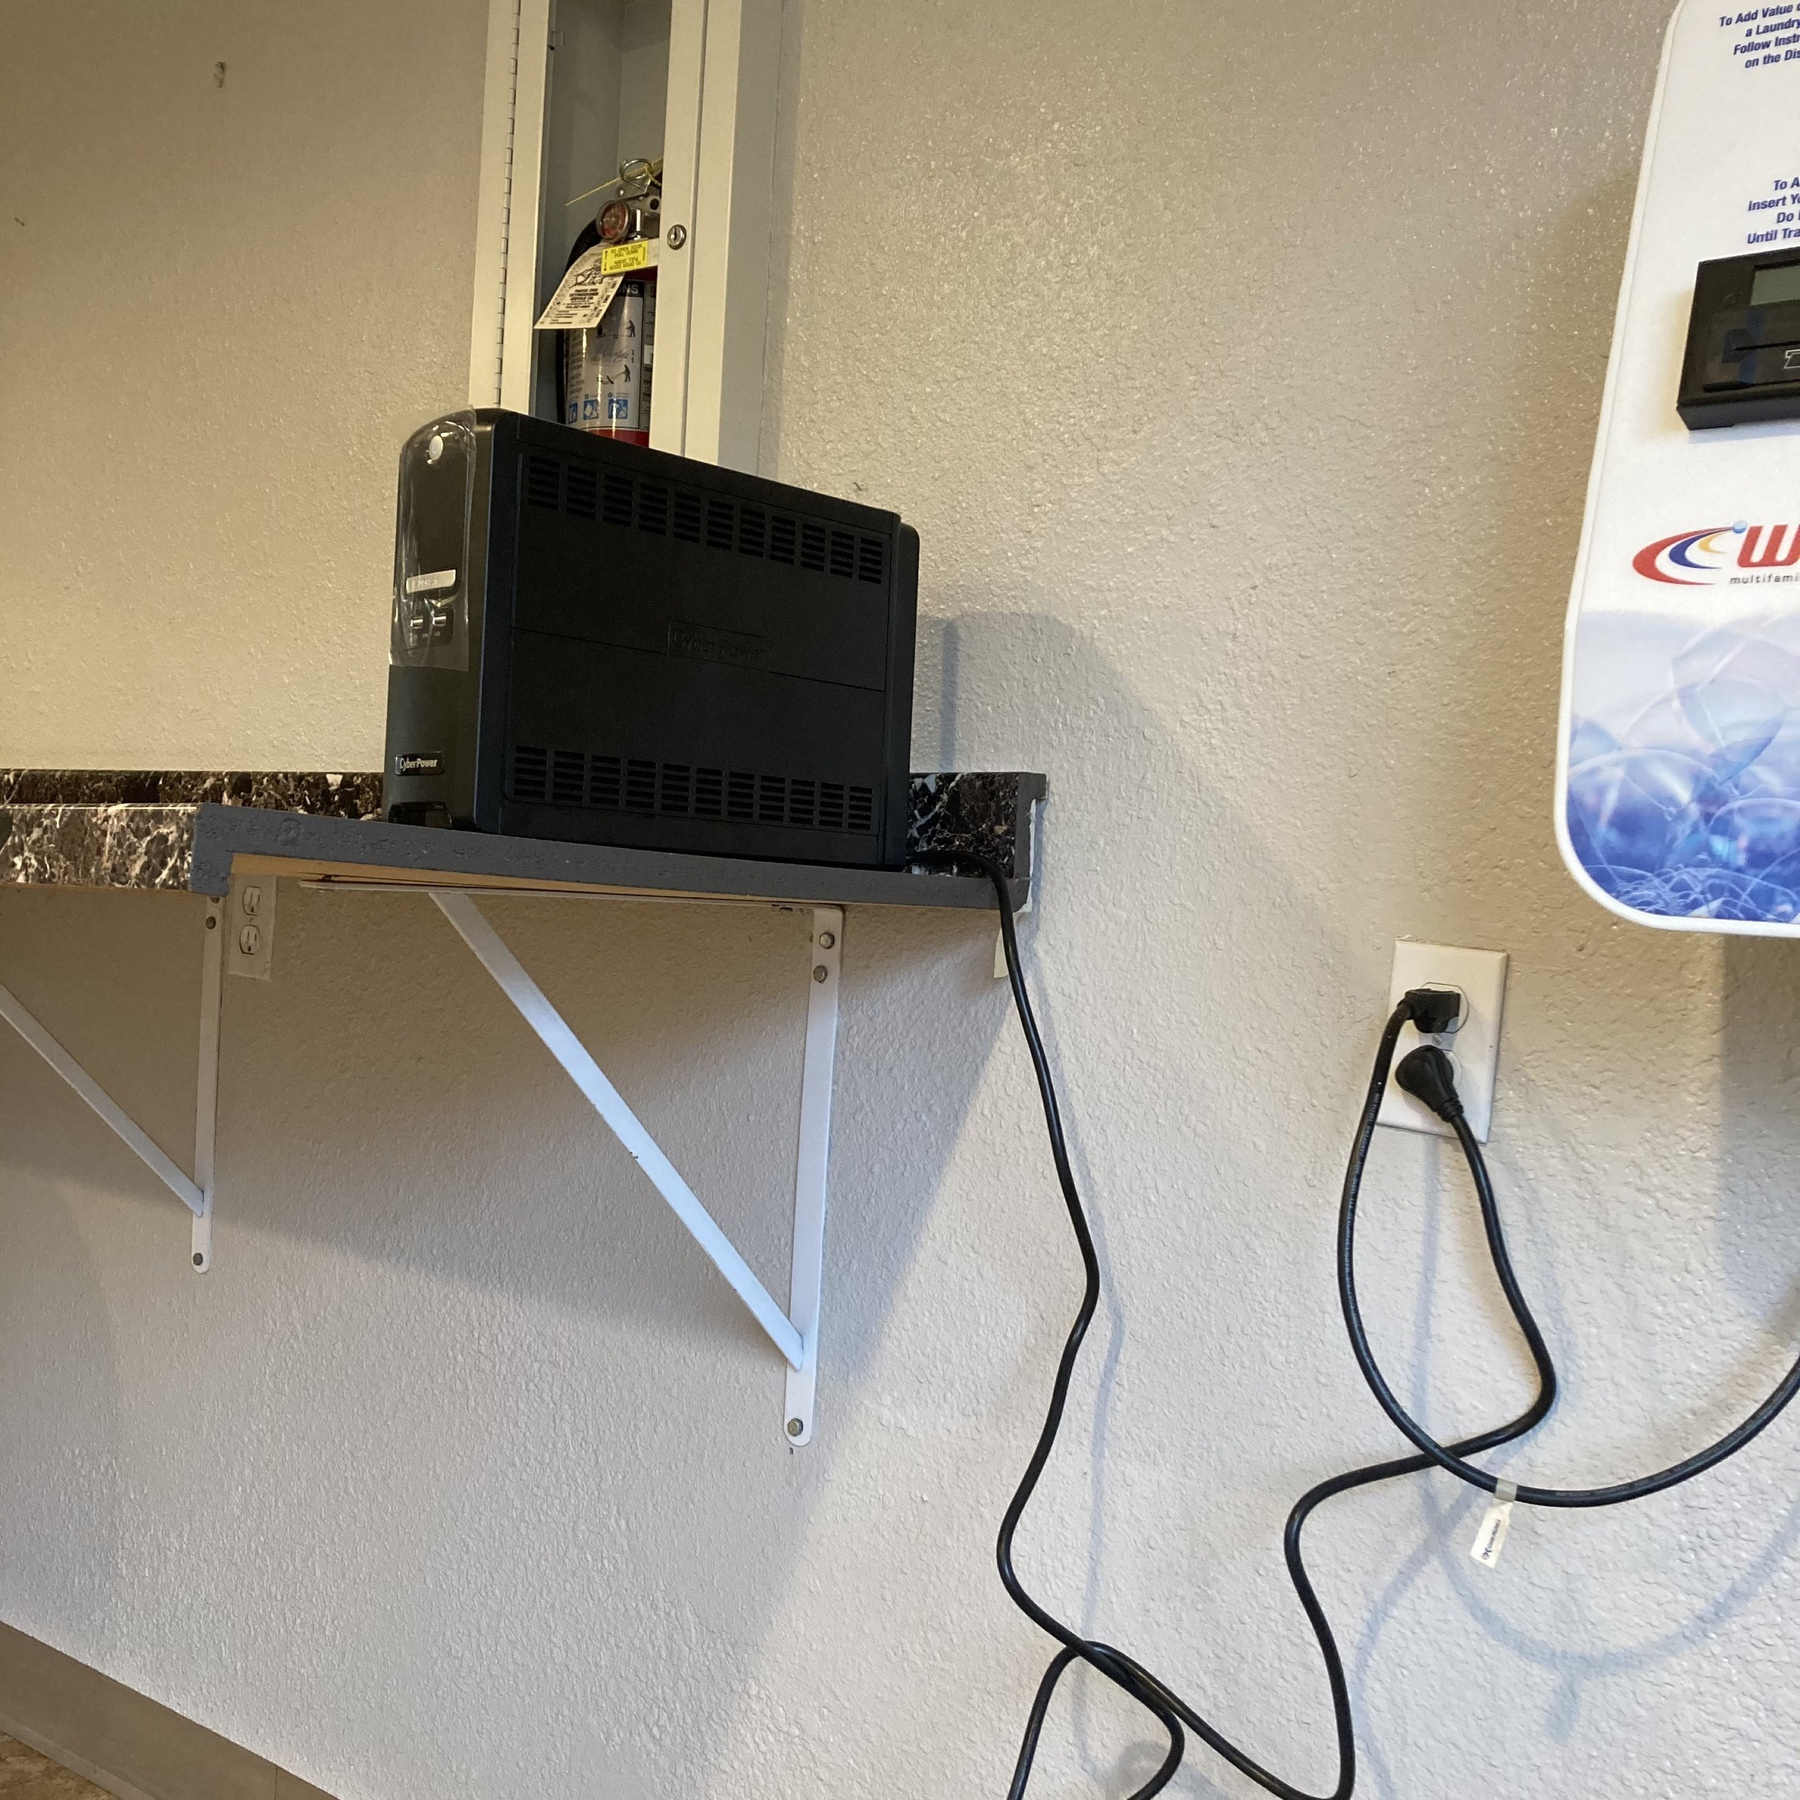 UPS plugged into the wall.